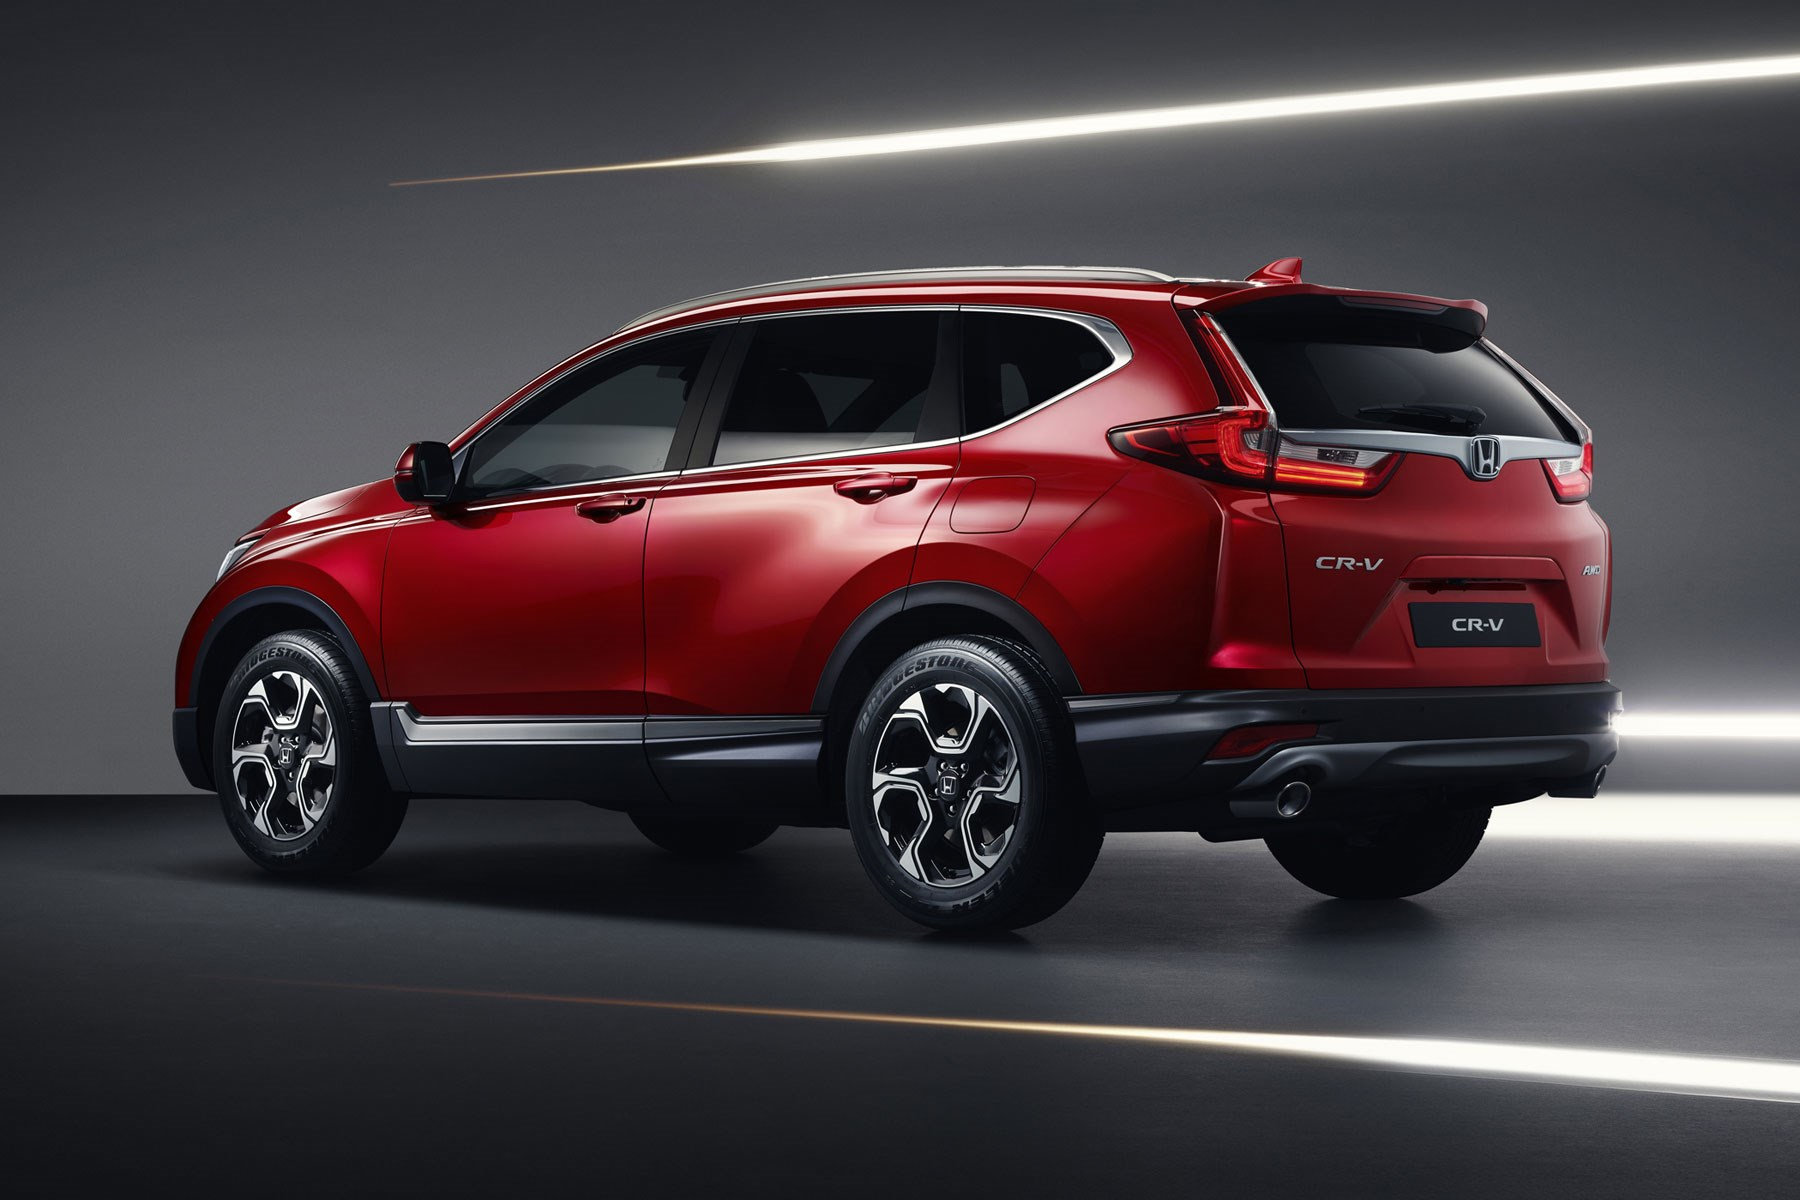 New Honda CR-V at the 2018 Geneva motor show ...